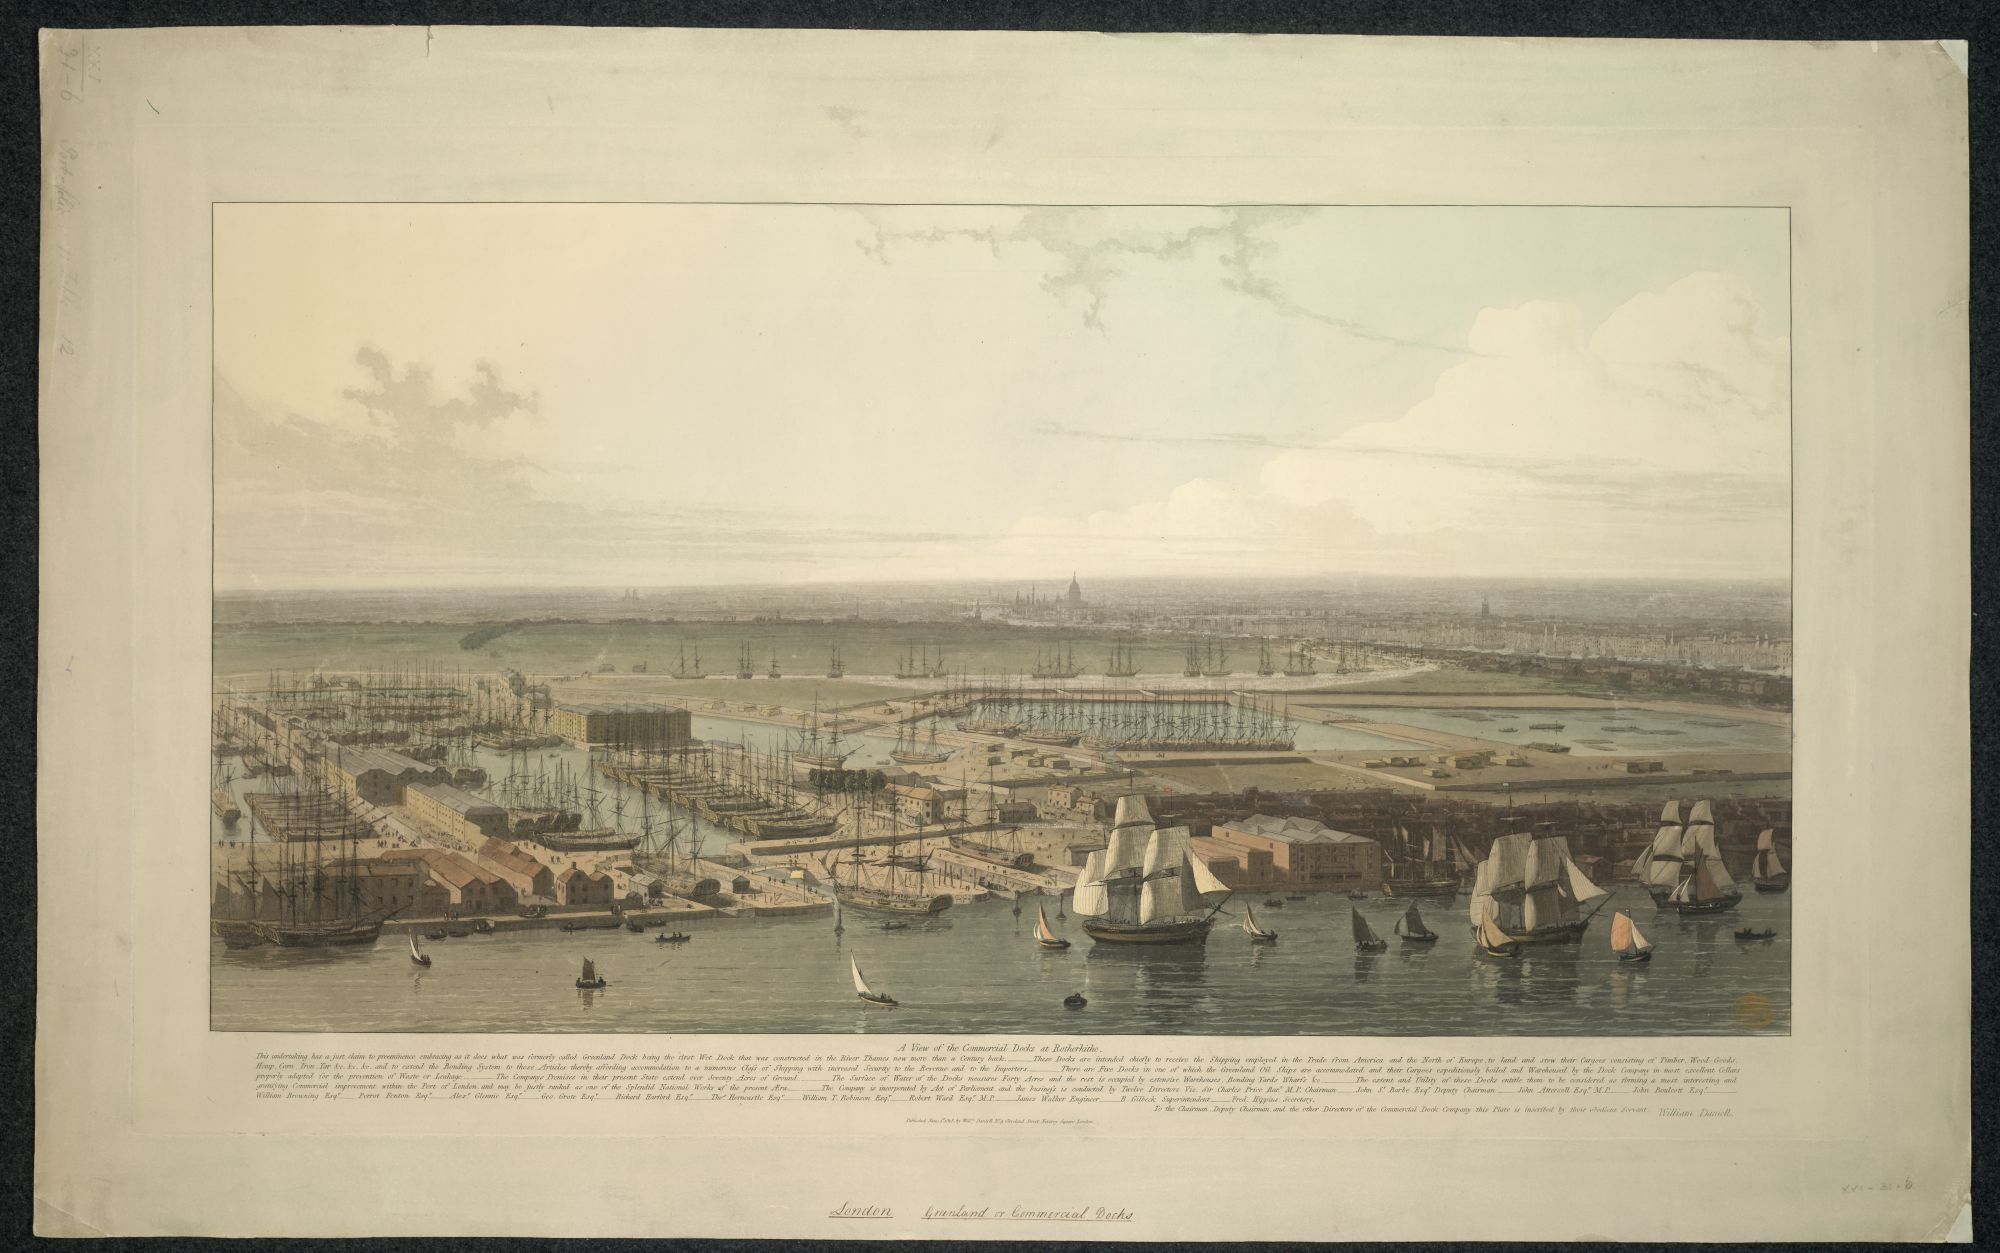 William Daniell, A View of the Commercial Docks at Rotherhithe, published by William Daniell, London, 1813, etching and aquatint with hand-colouring, plate 49.9 x 86 cm, on sheet 60 x 96 cm, British Library, London, Maps K.Top.21.31.6.PORT.11 TAB.